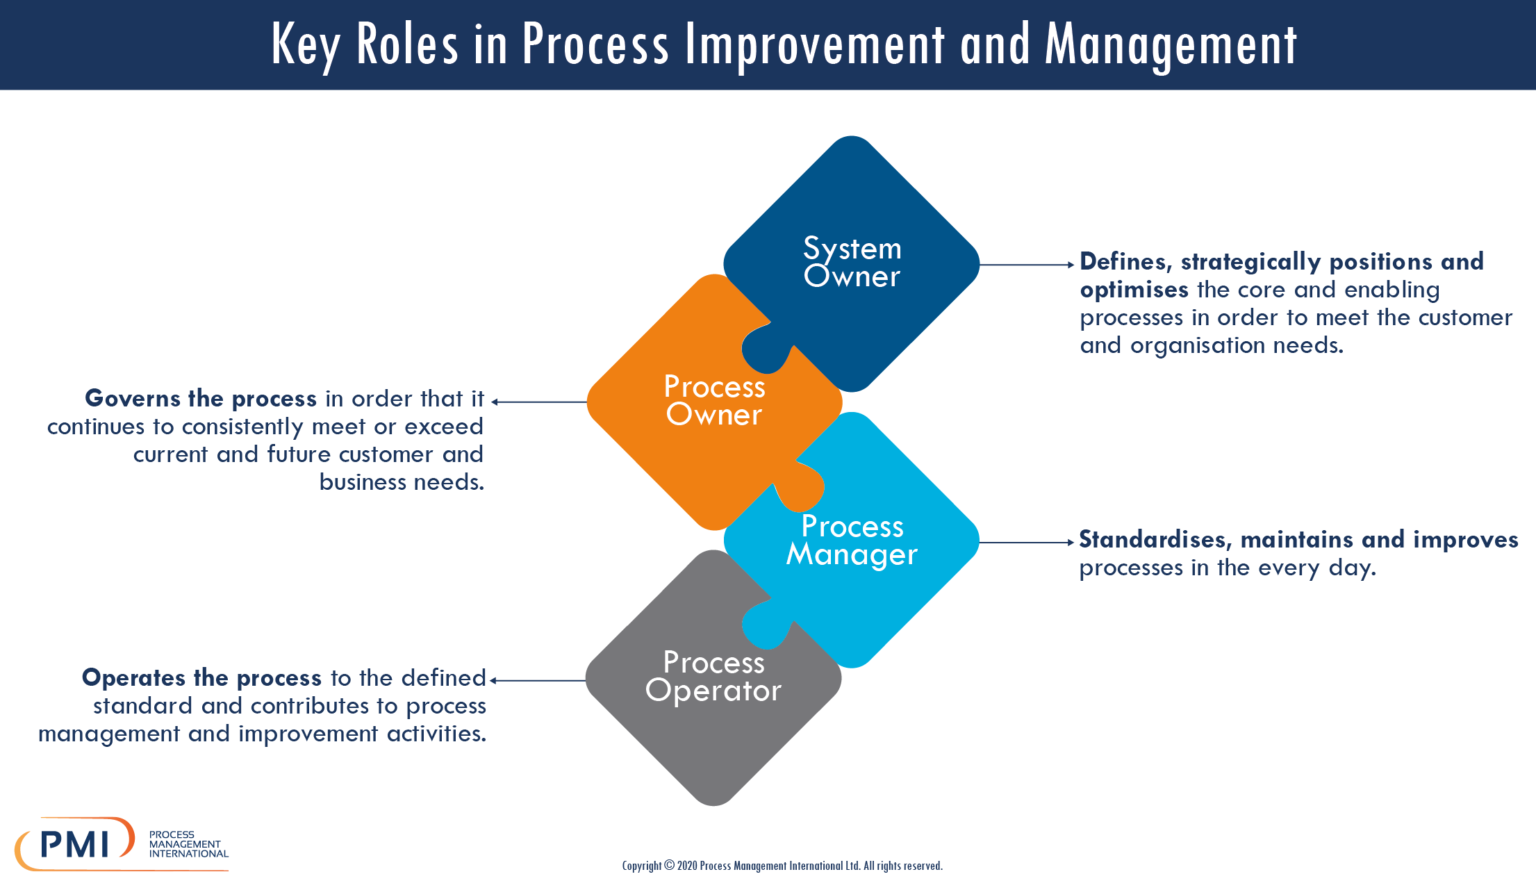 Key Roles in Process Management and Improvement Infographic